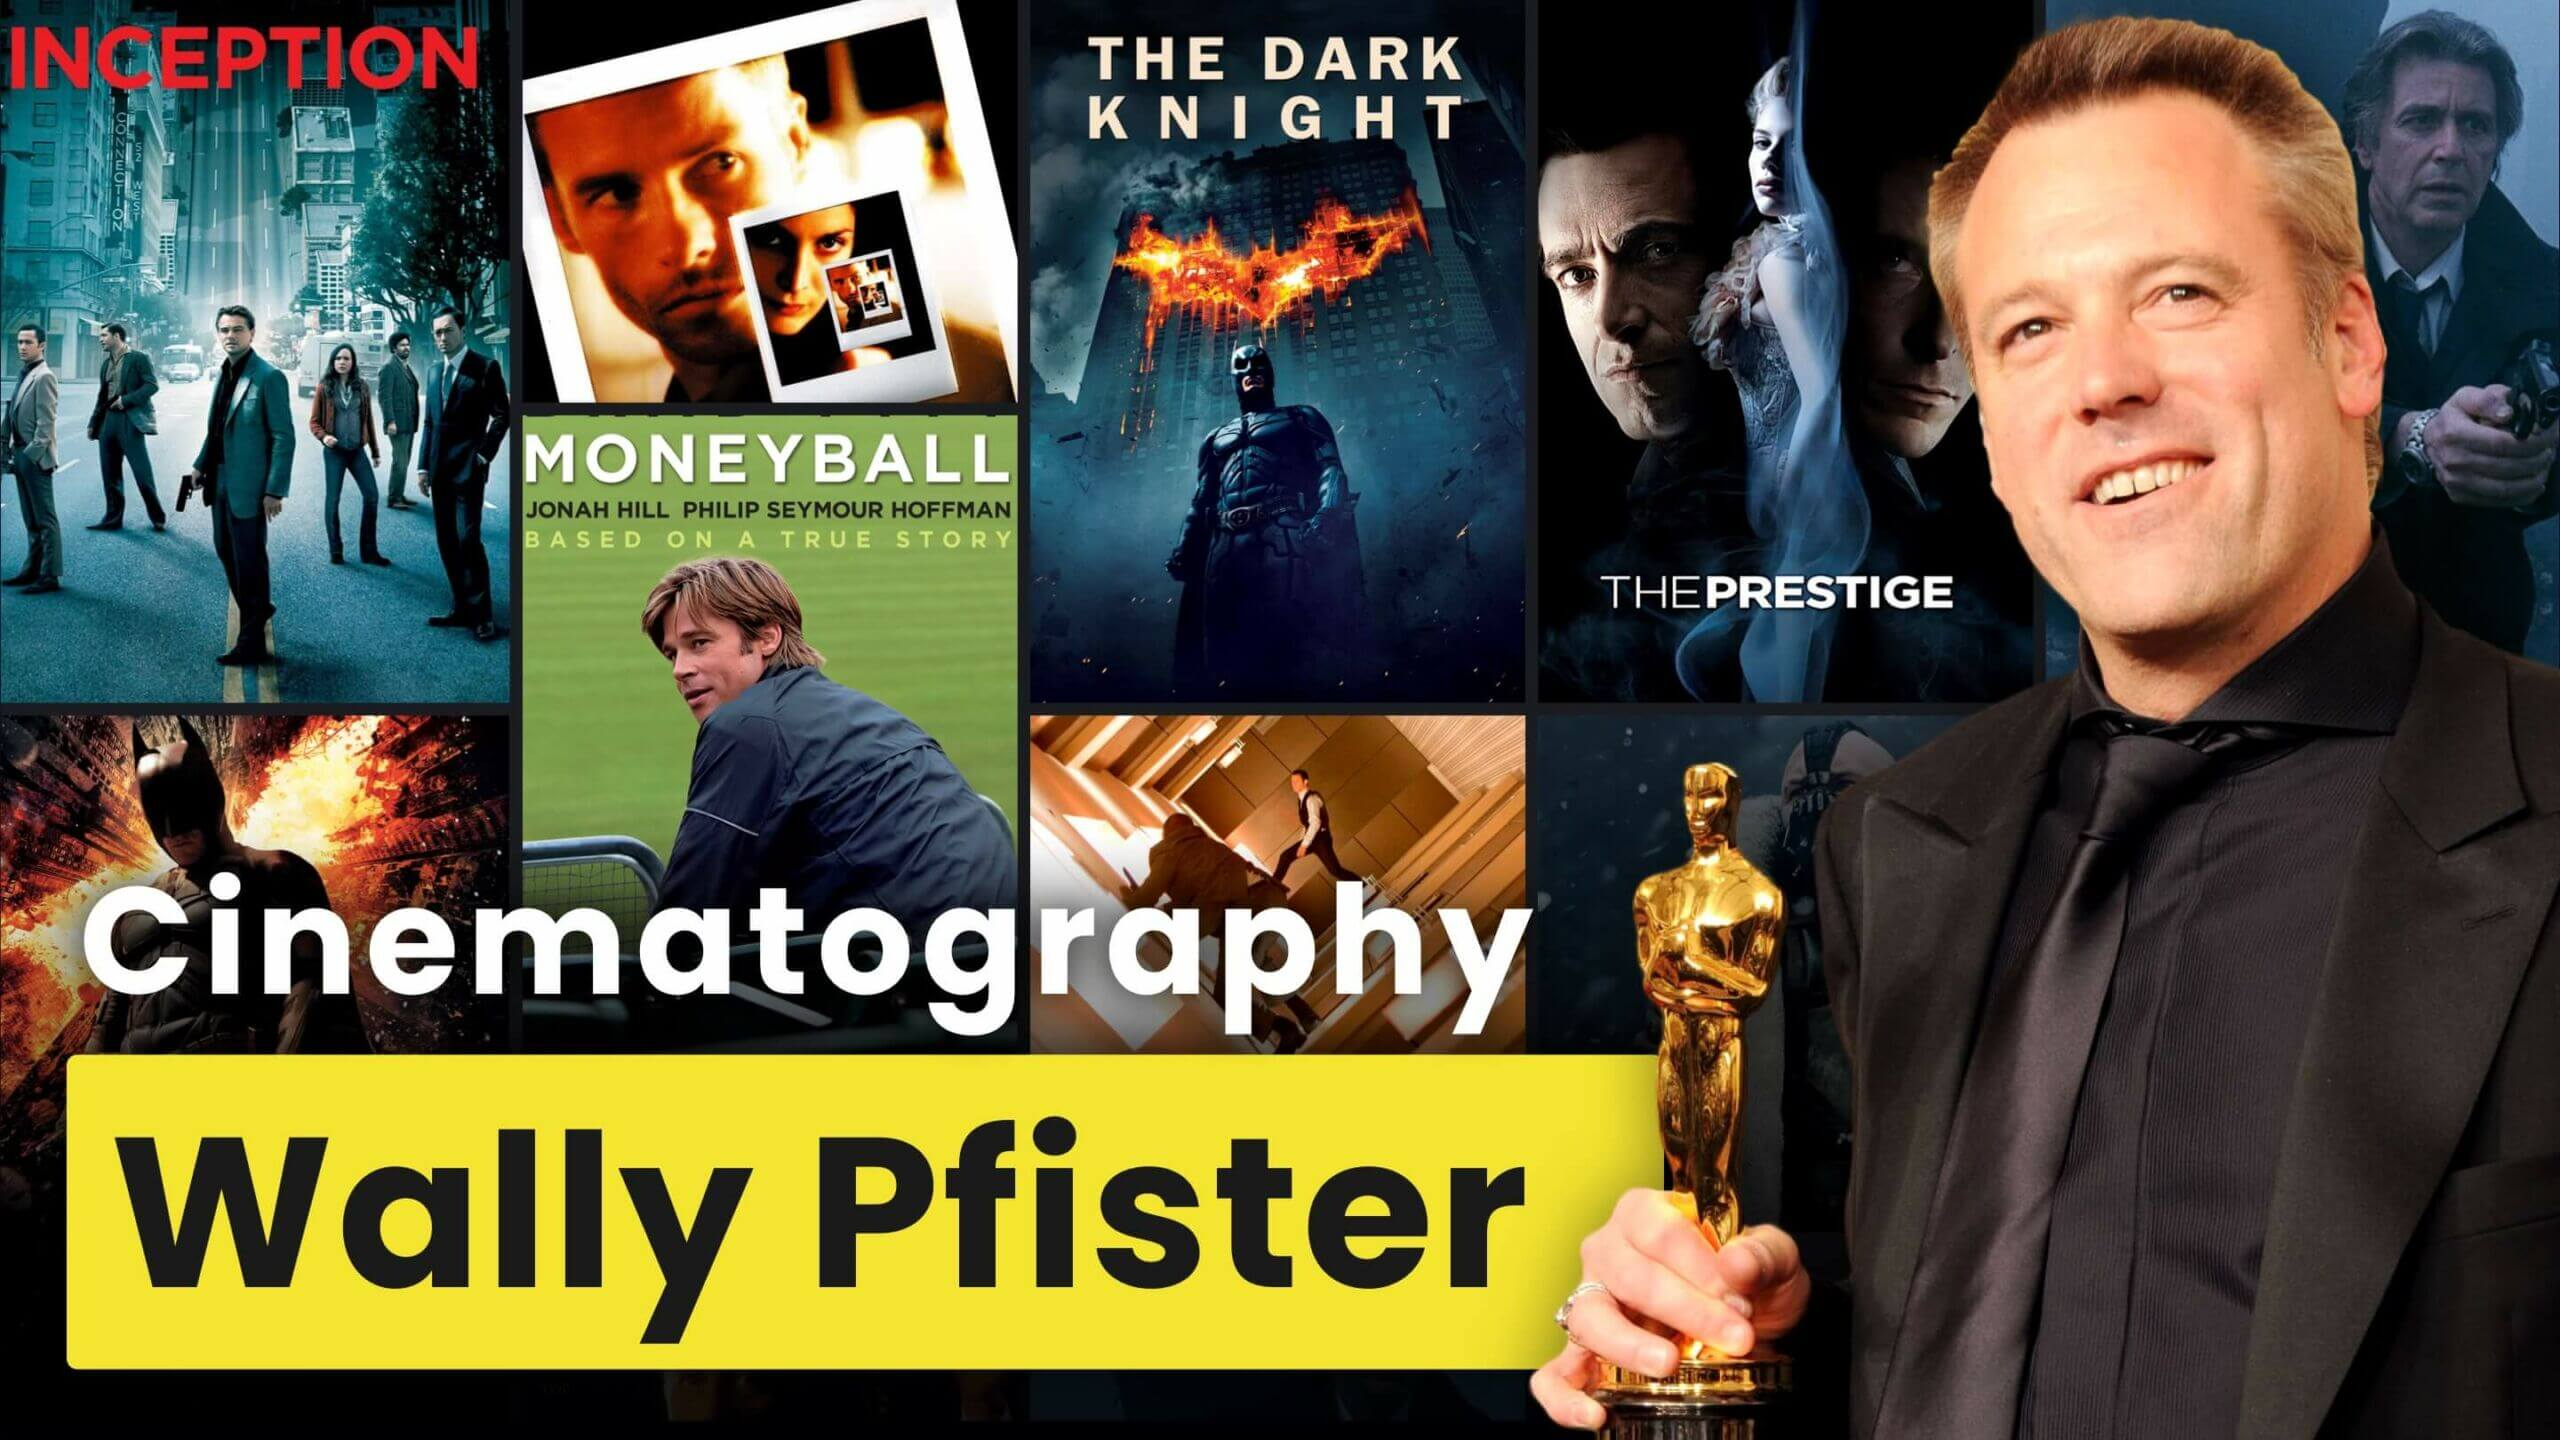 DP Wally Pfister on Shooting Dark Knight Trilogy, Inception and More - Cinematography Techniques - What Does a Cinematographer Do